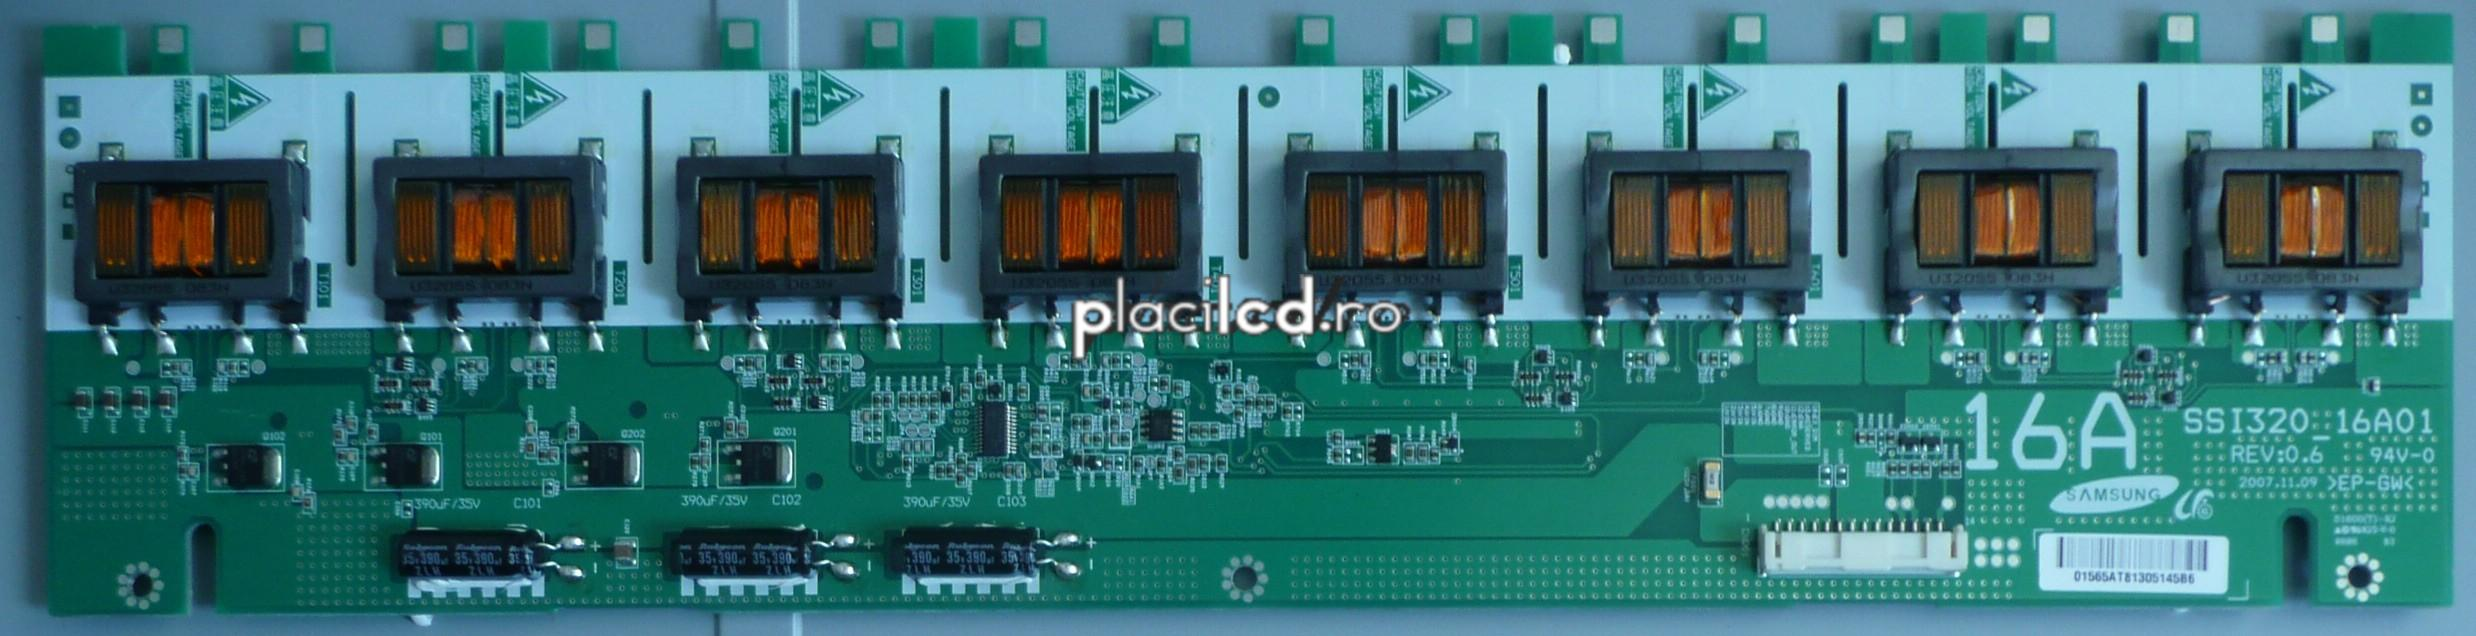 Placa invertoare SSI320_16A01